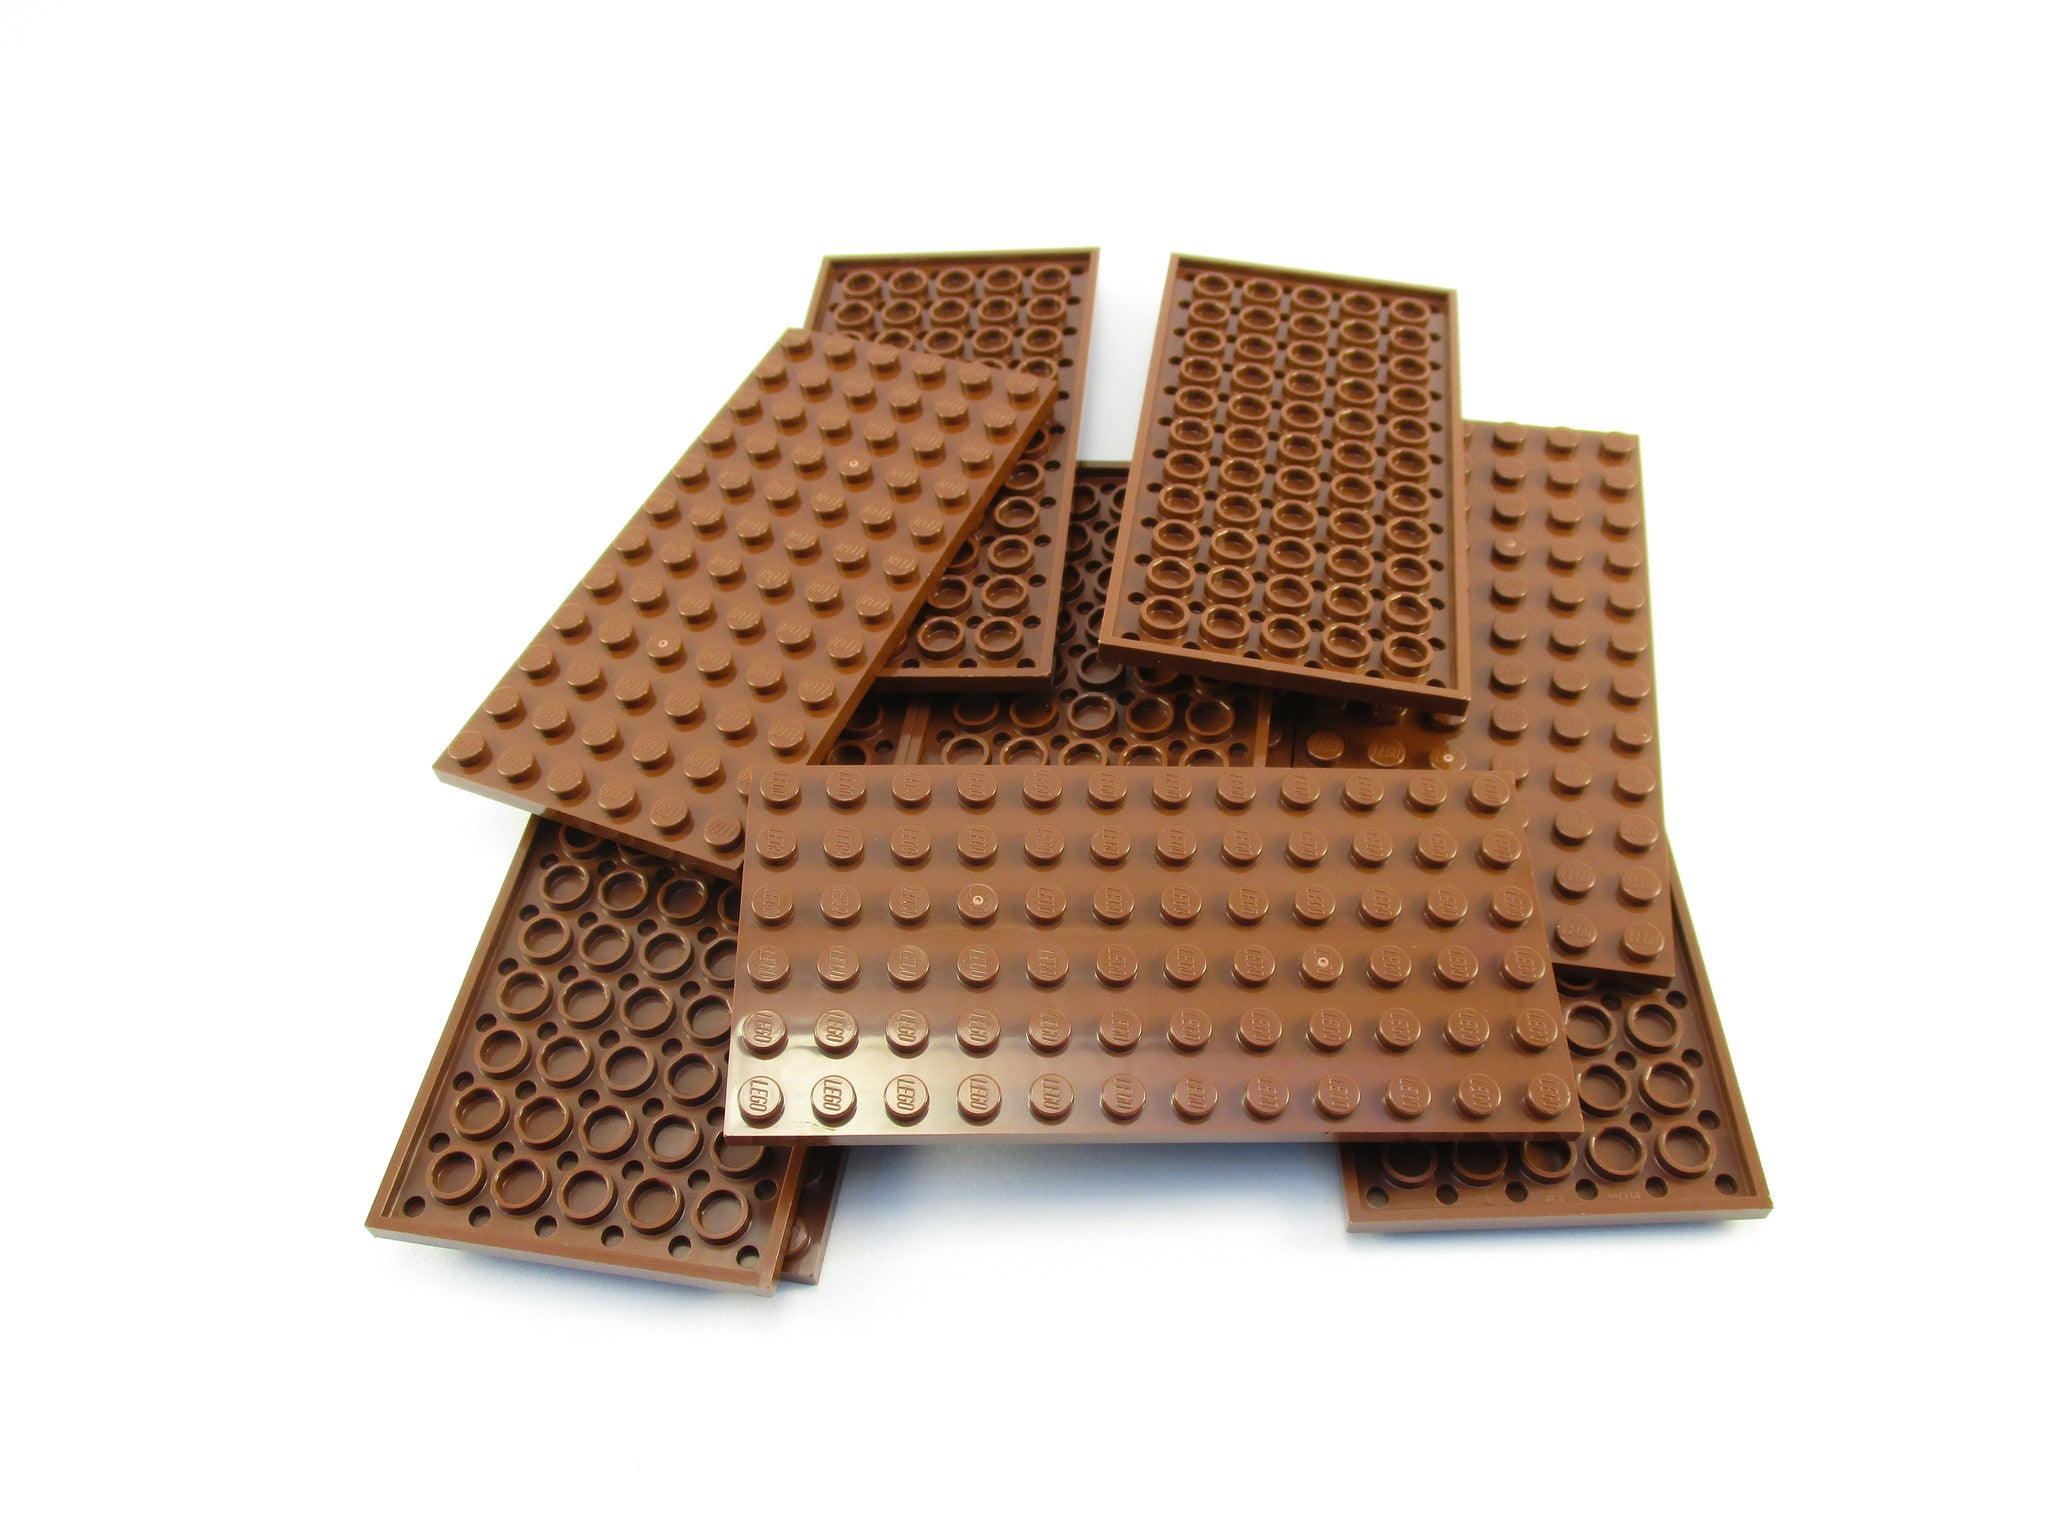 LEGO Reddish Brown Plate 6x12 Lot of 10 Parts Pieces 3028